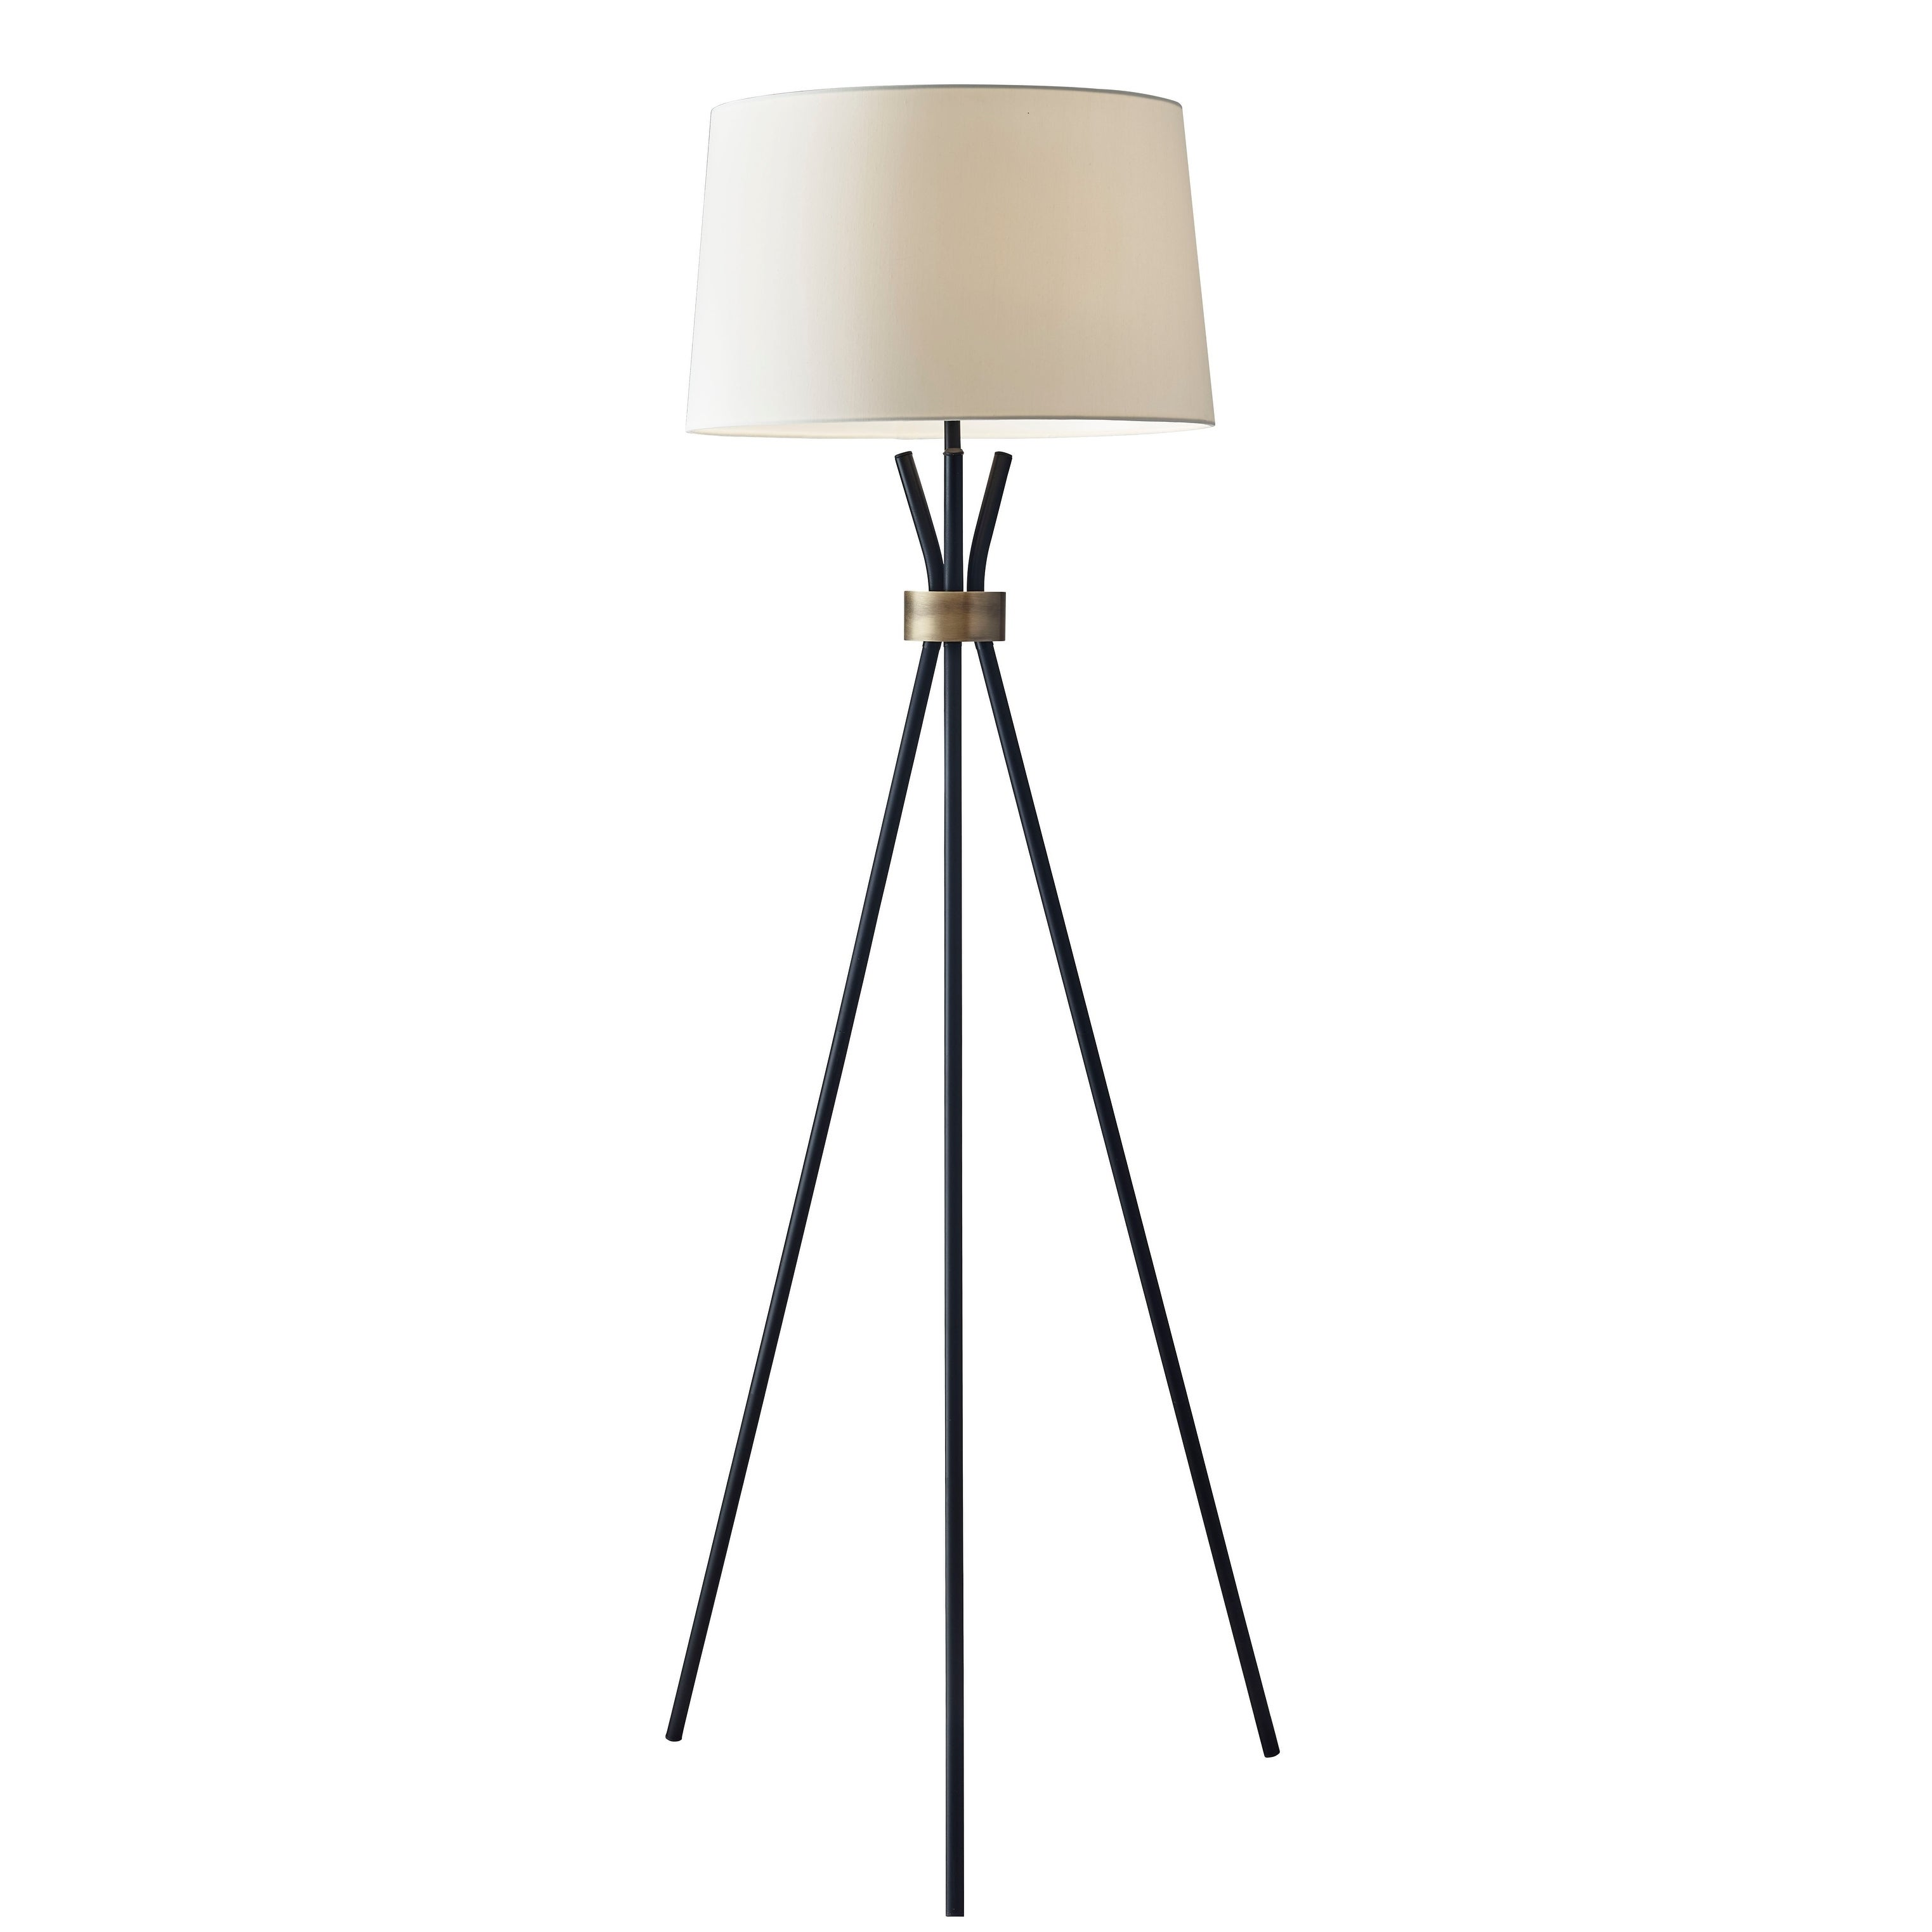 Image of: Shop Black Friday Deals On Adesso Benson Black With Antique Bronze Tripod Floor Lamp Overstock 23034024